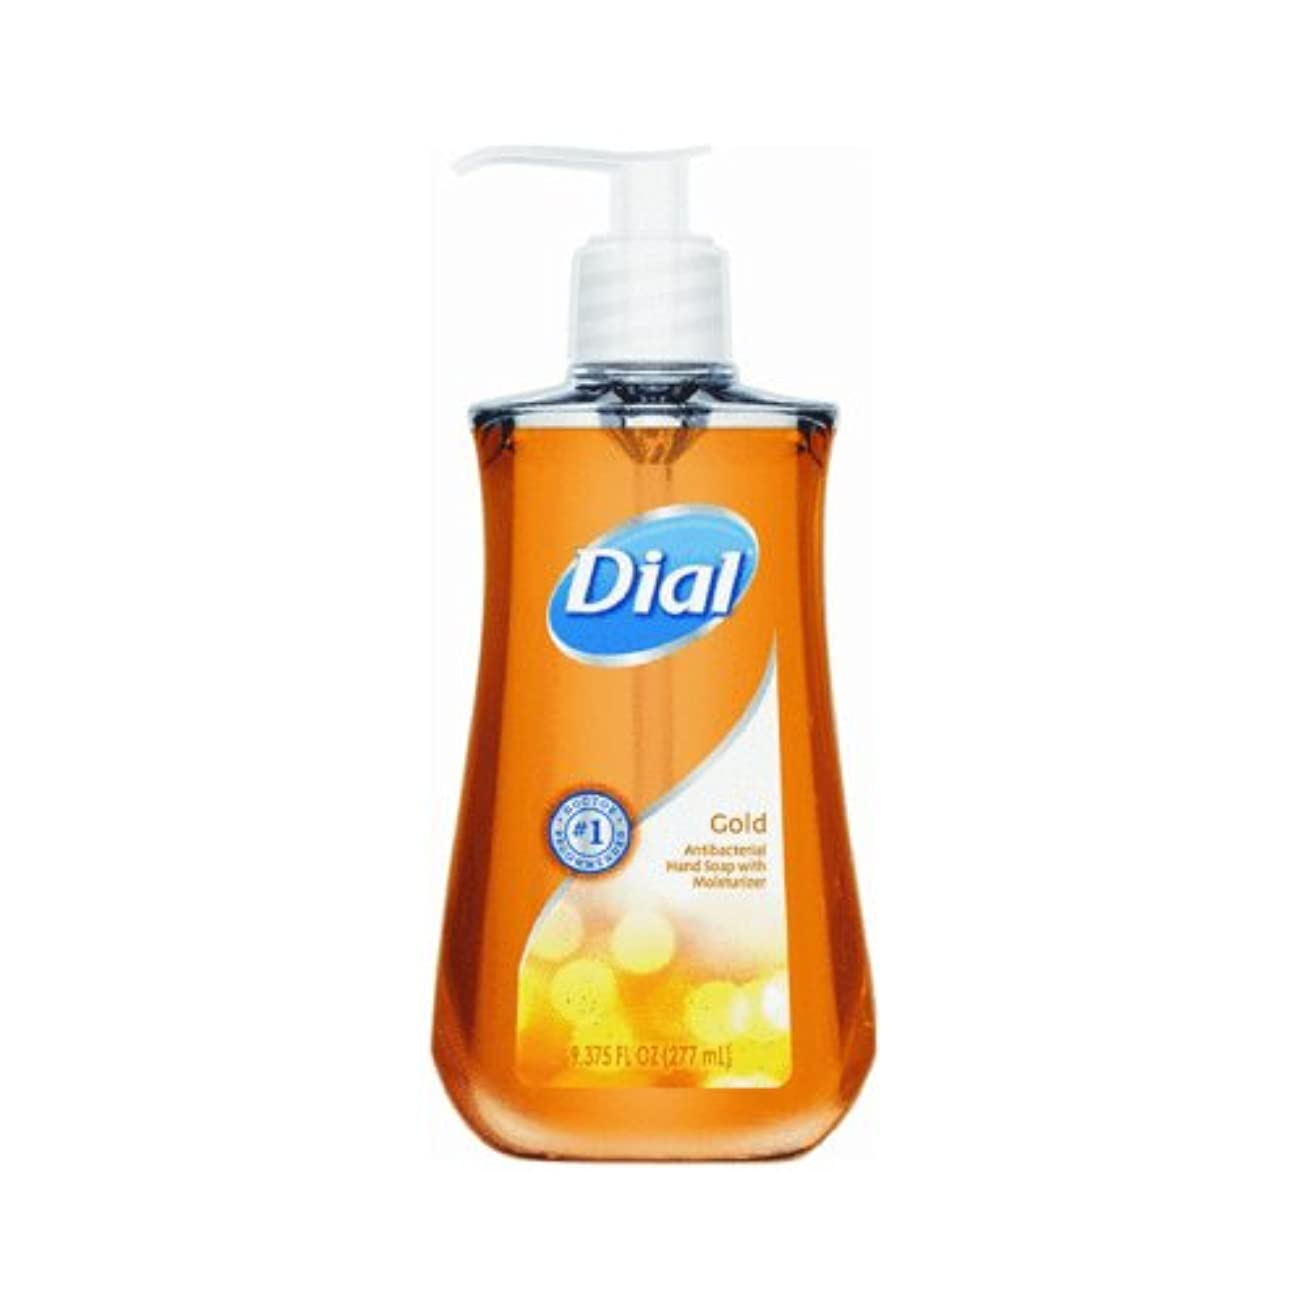 重なる錫人質Dial Antibacterial Hand Soap, Gold with Moisturizer 280 ml (Pack of 12) (並行輸入品)